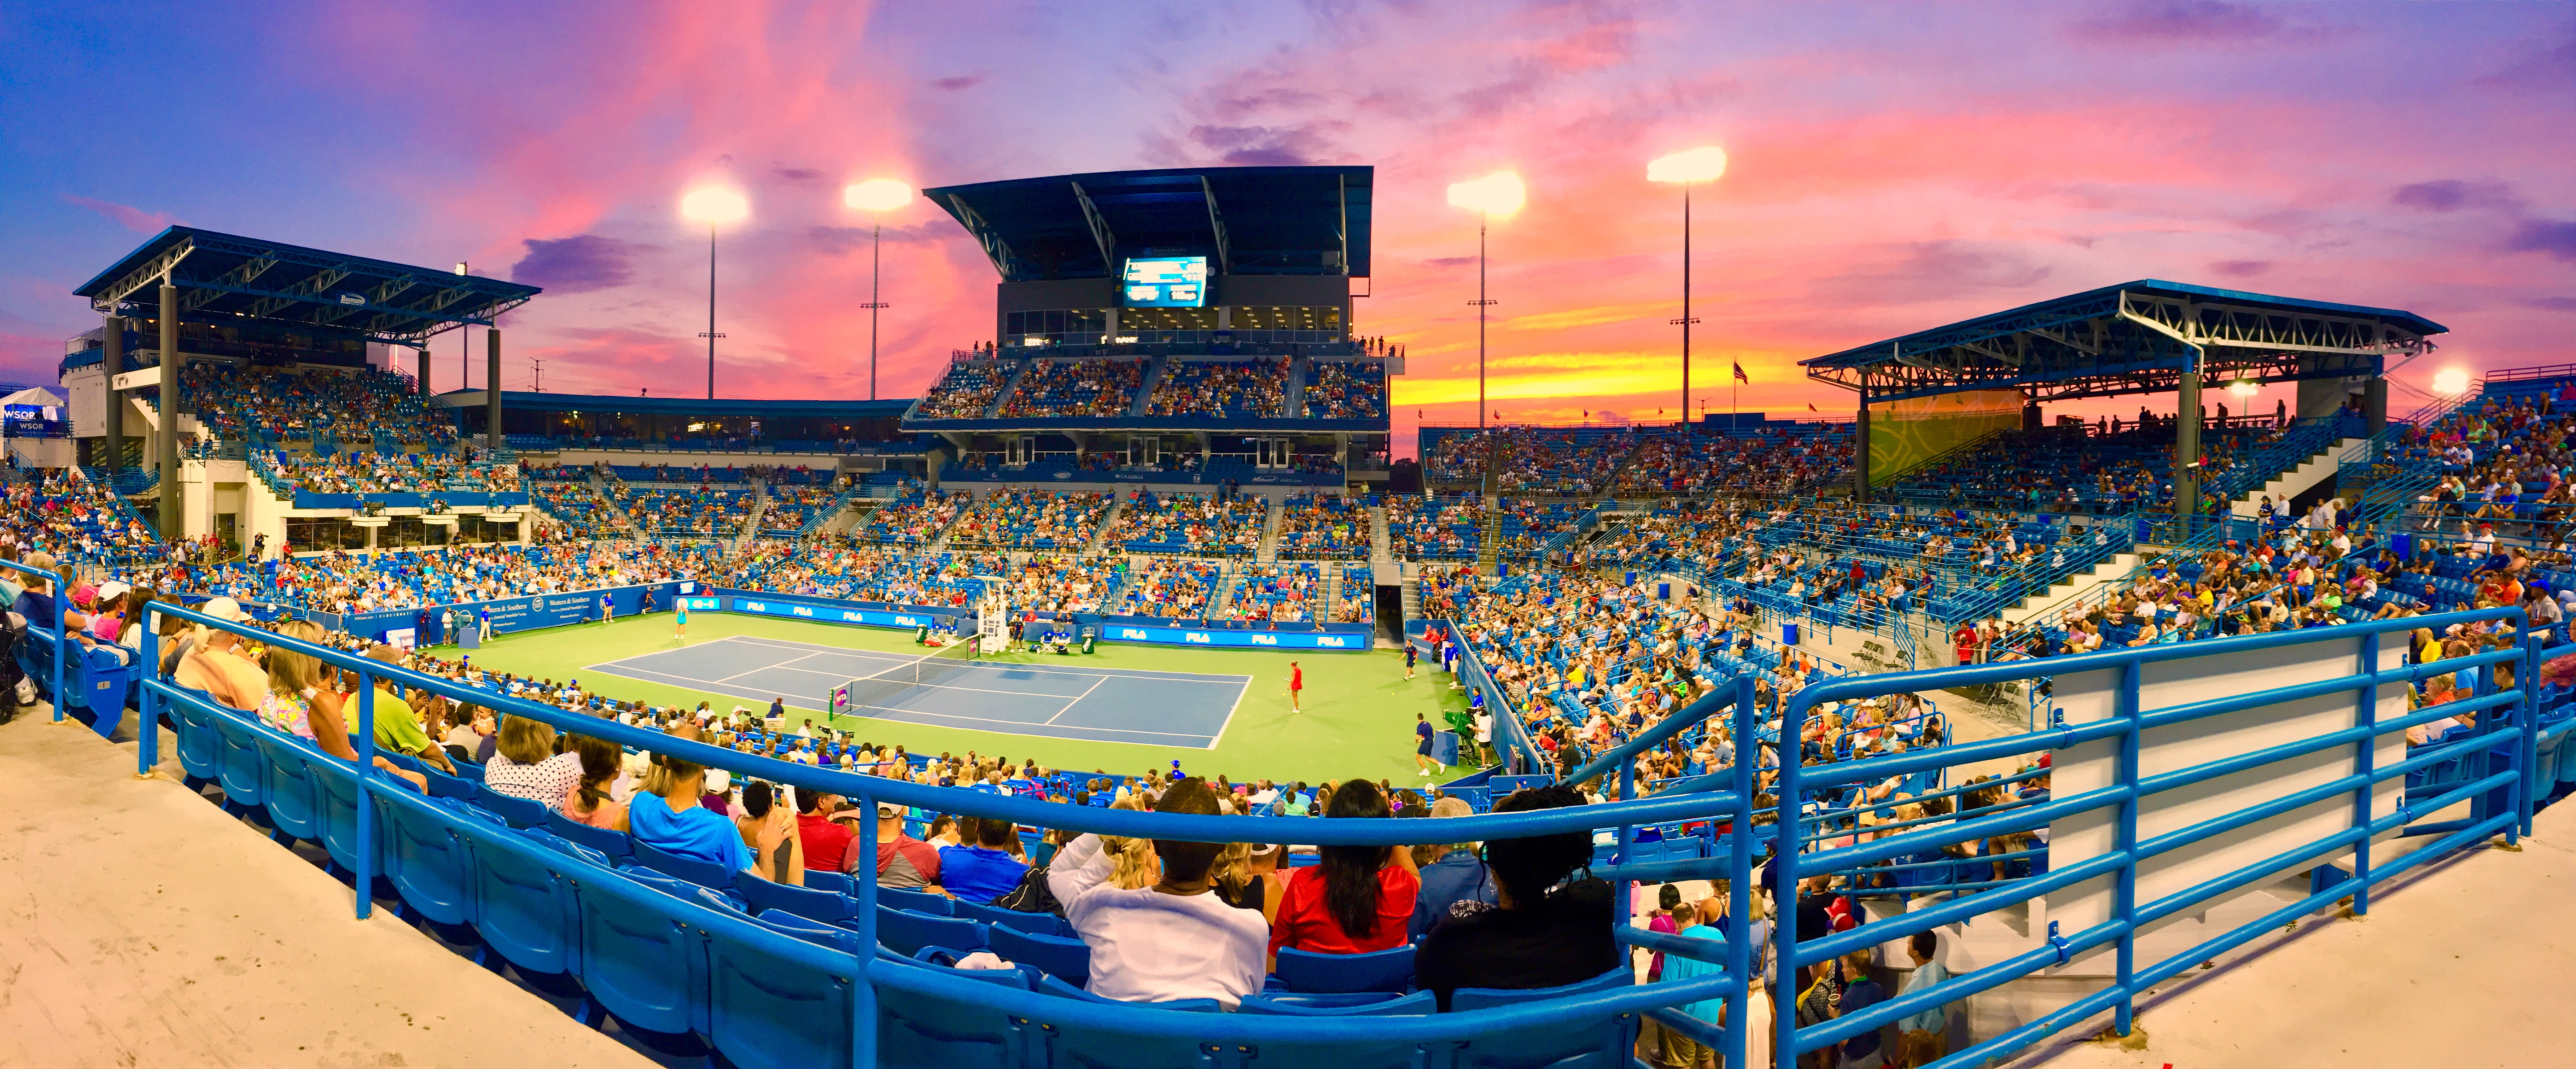 "Pictured: The sunset from Monday night at the Western and Southern Open from the gallery ""Photo Highlights From The Western and Southern Open"" / Image: Leah Zipperstein // Published: 12.31.17"